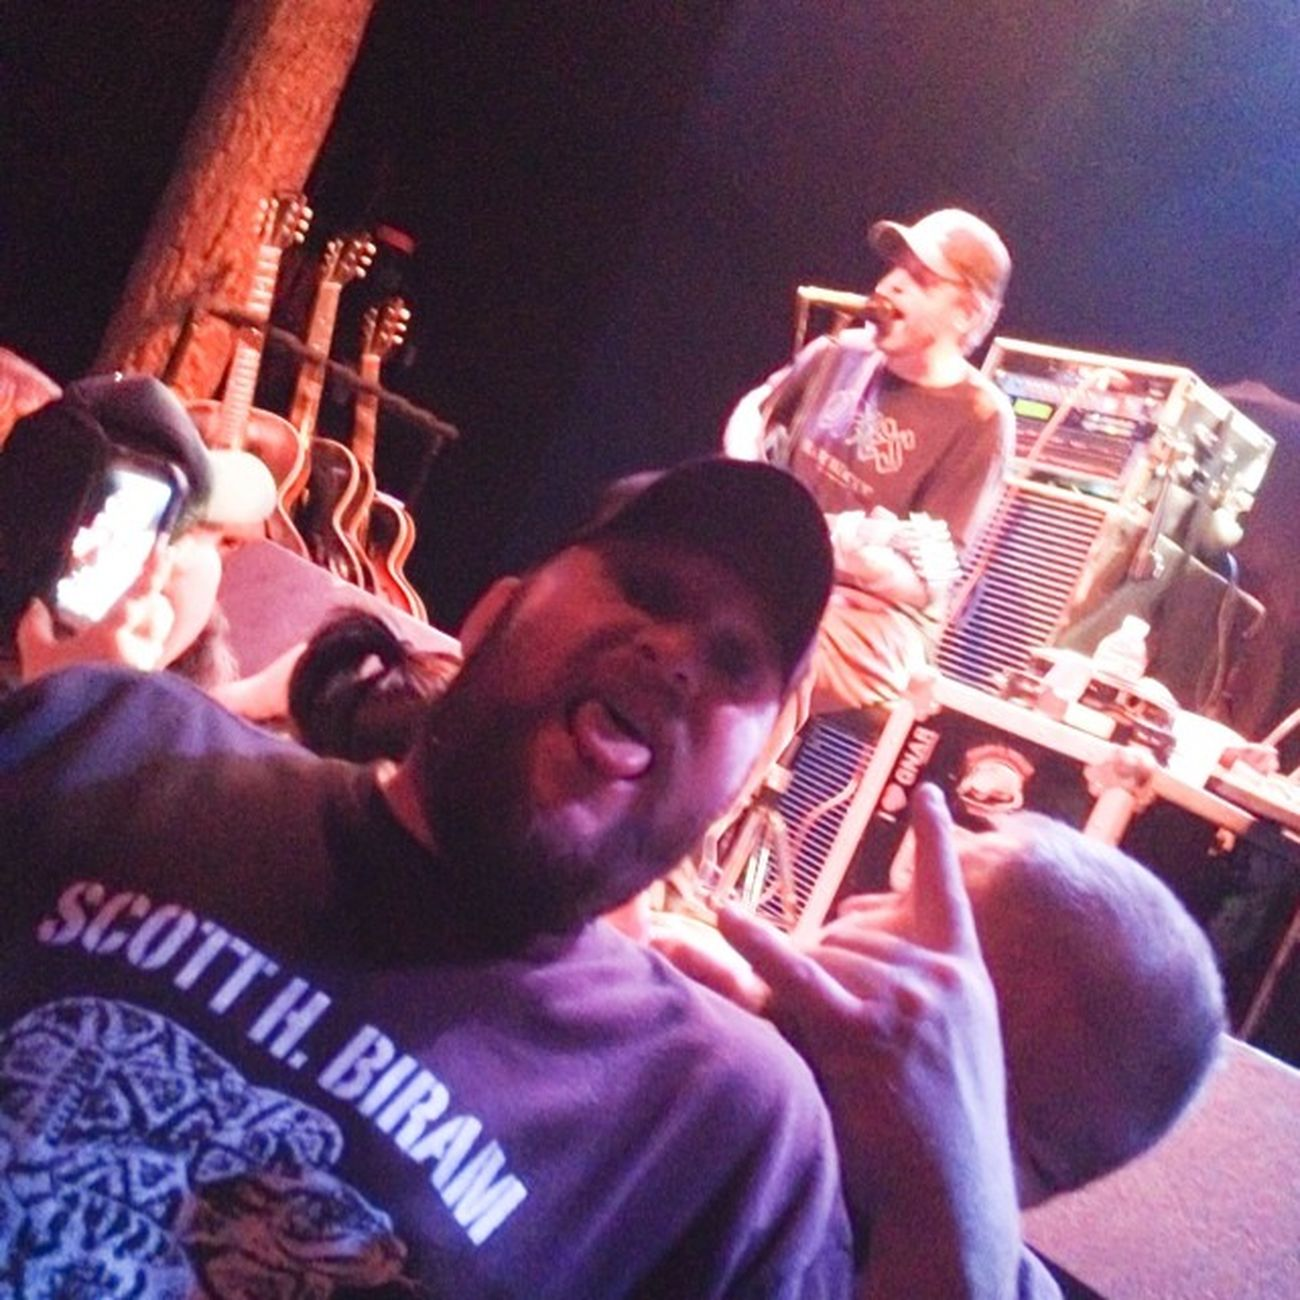 And yea, my little bro at the Scott Biram concert at Trees in Dallas. Haha 😃 Scottbiram Treesdallas Dallas Texas texasmusic